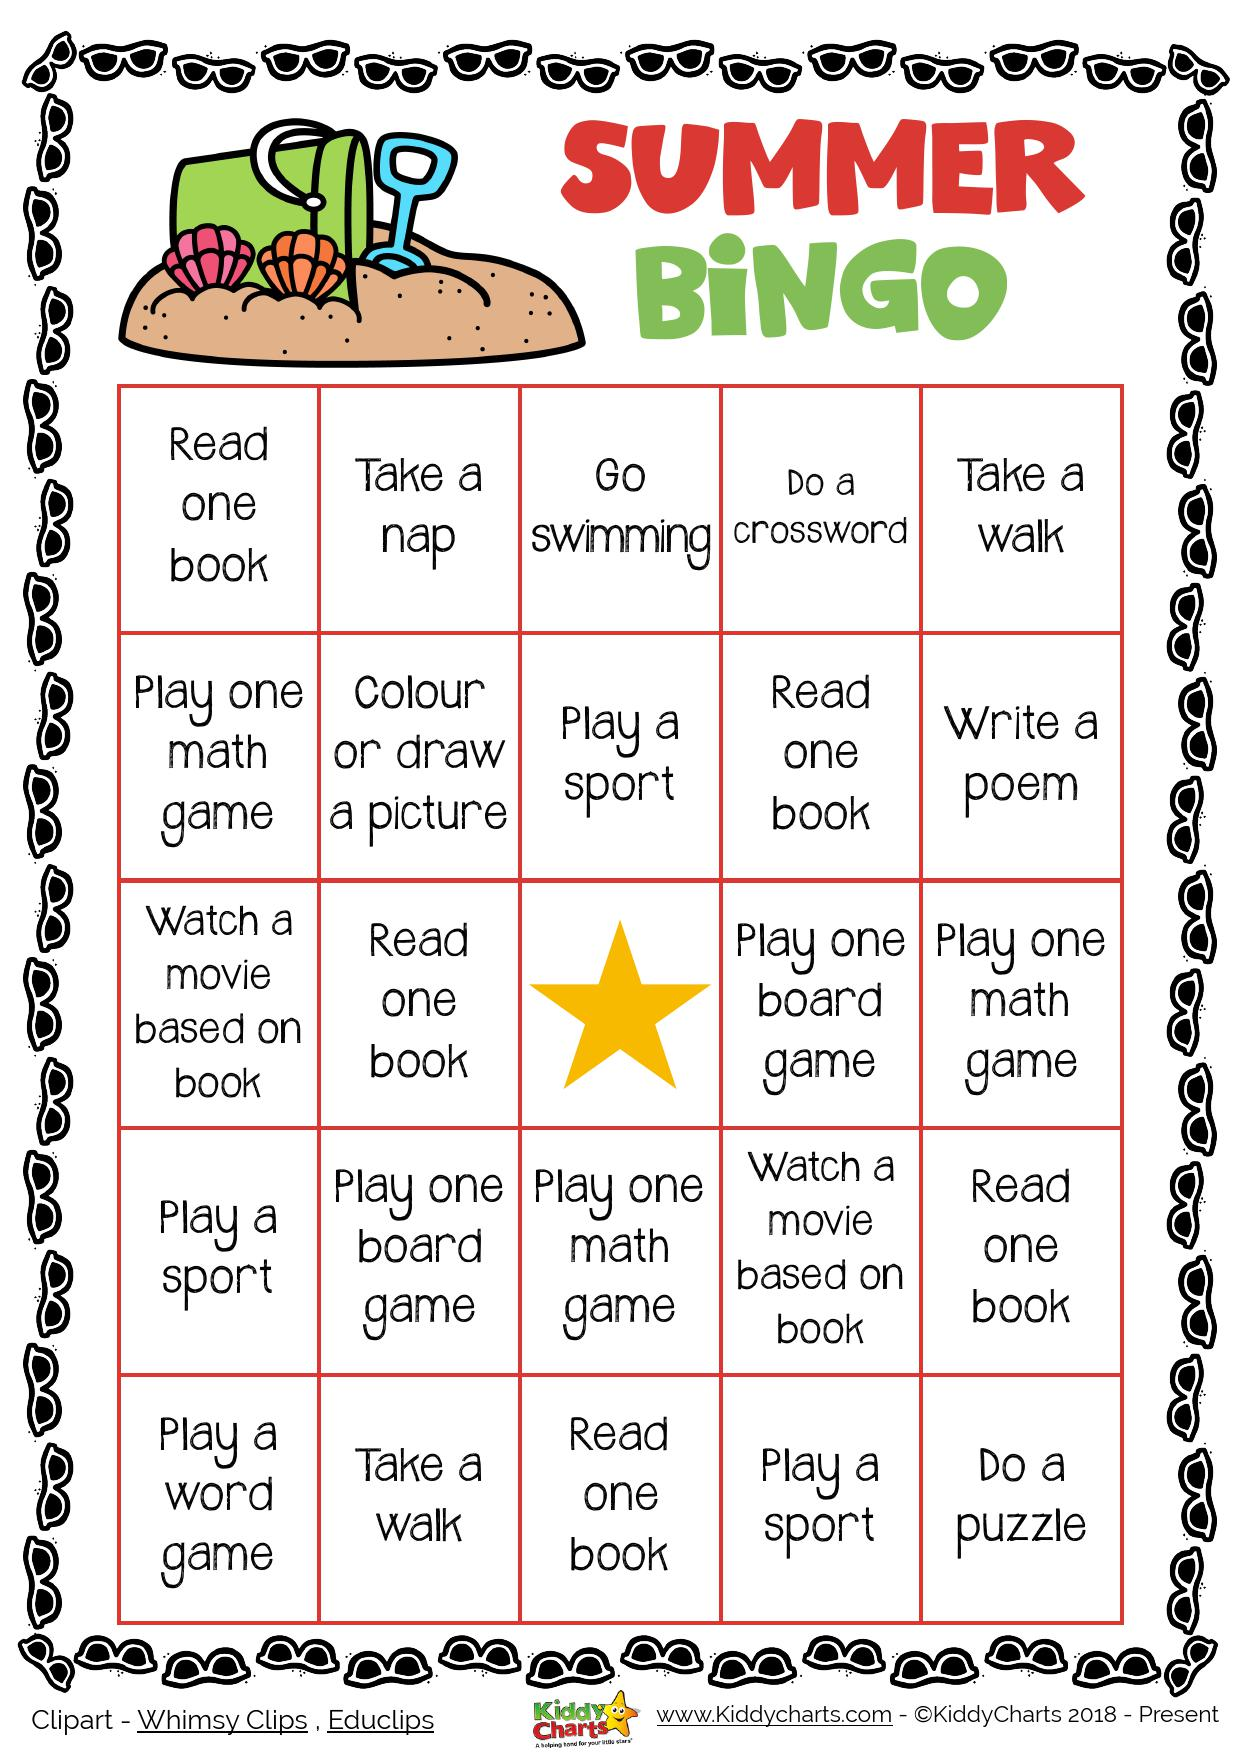 Day 1 Summer Bingo Printable Game Kiddychartssummer